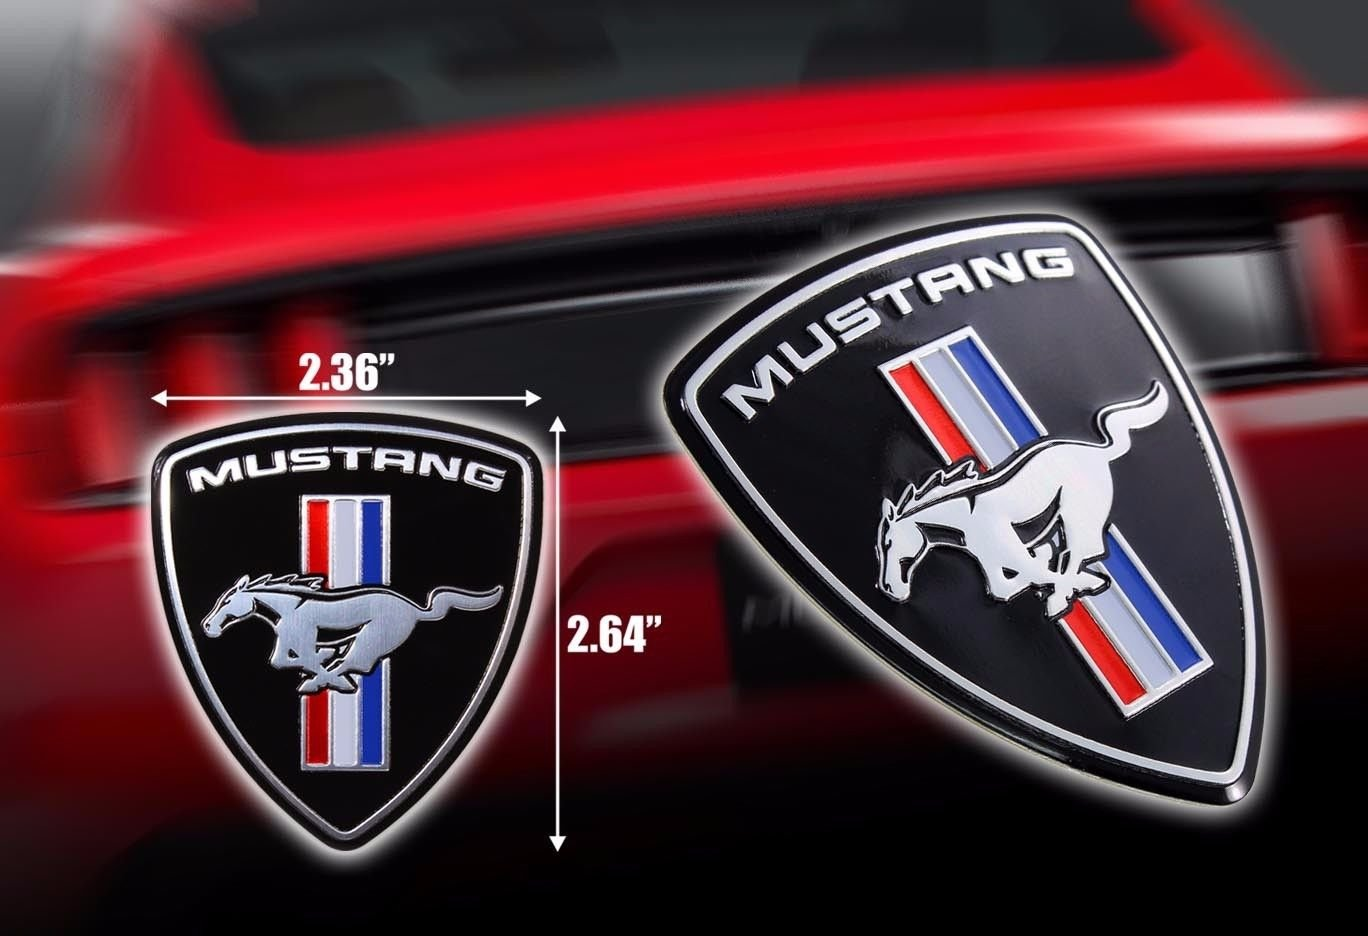 Exotic Store FM-2D Modified Metal Modified Mustang Ferrari Style Hood Fender Badge Emblem Fender Trunk Nameplate not Plastic 2 Pieces